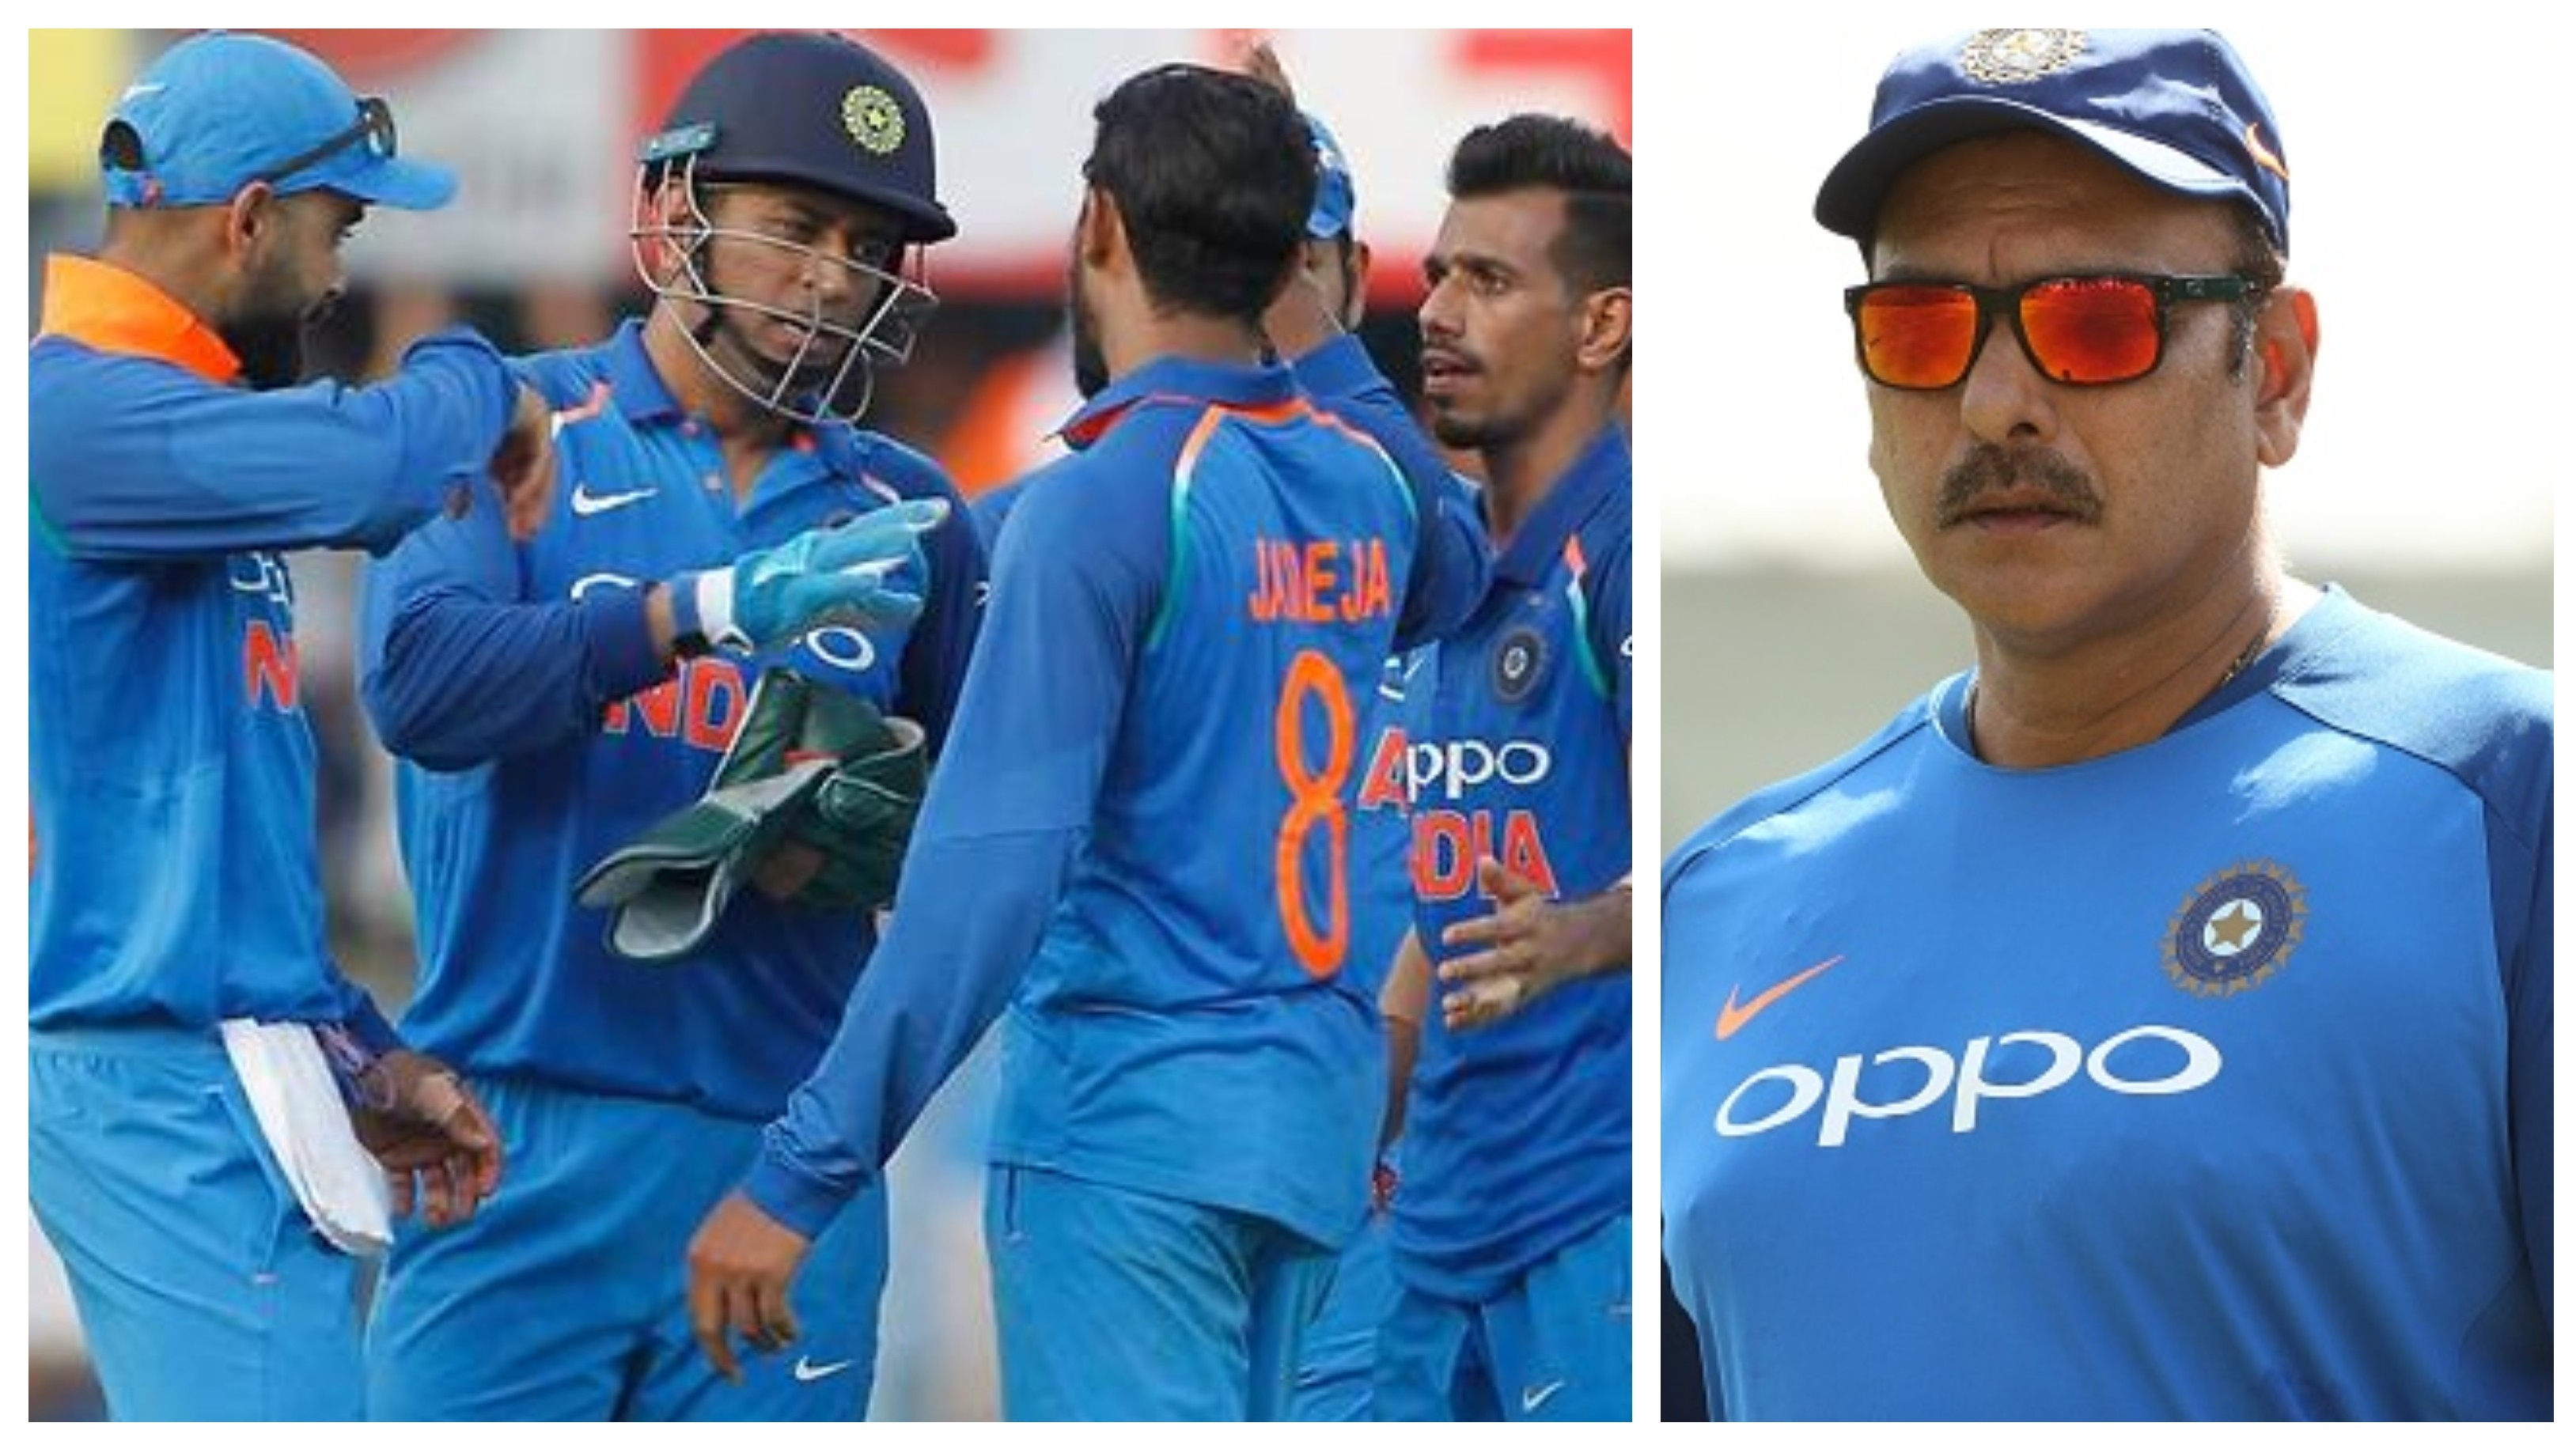 CWC 2019: Team India have all bases covered going into the World Cup, says Ravi Shastri